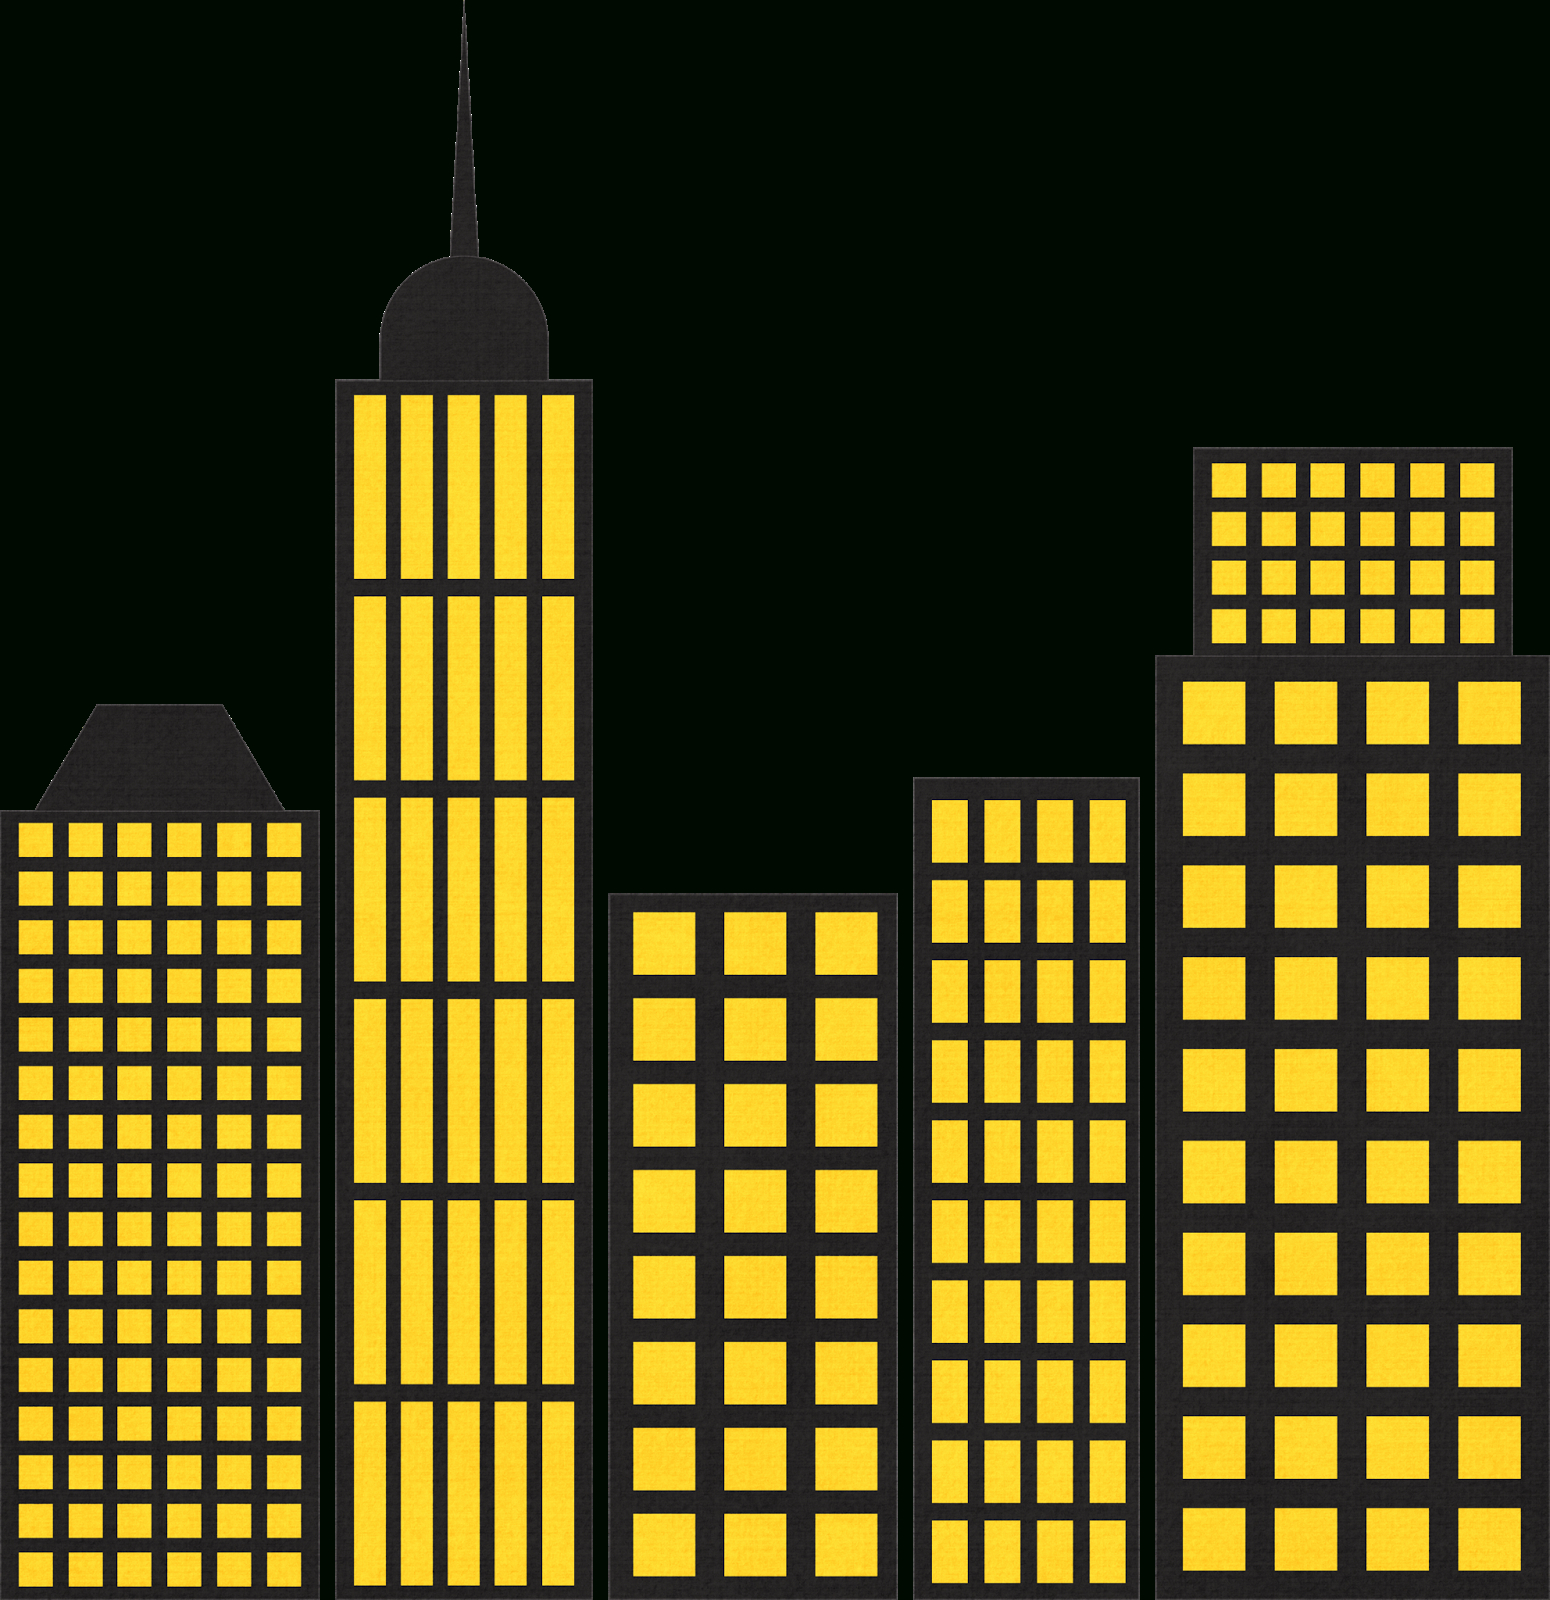 Cityscape - Free Printable Download For A Superhero Of Pj Masks - Free Printable Superhero Skyline